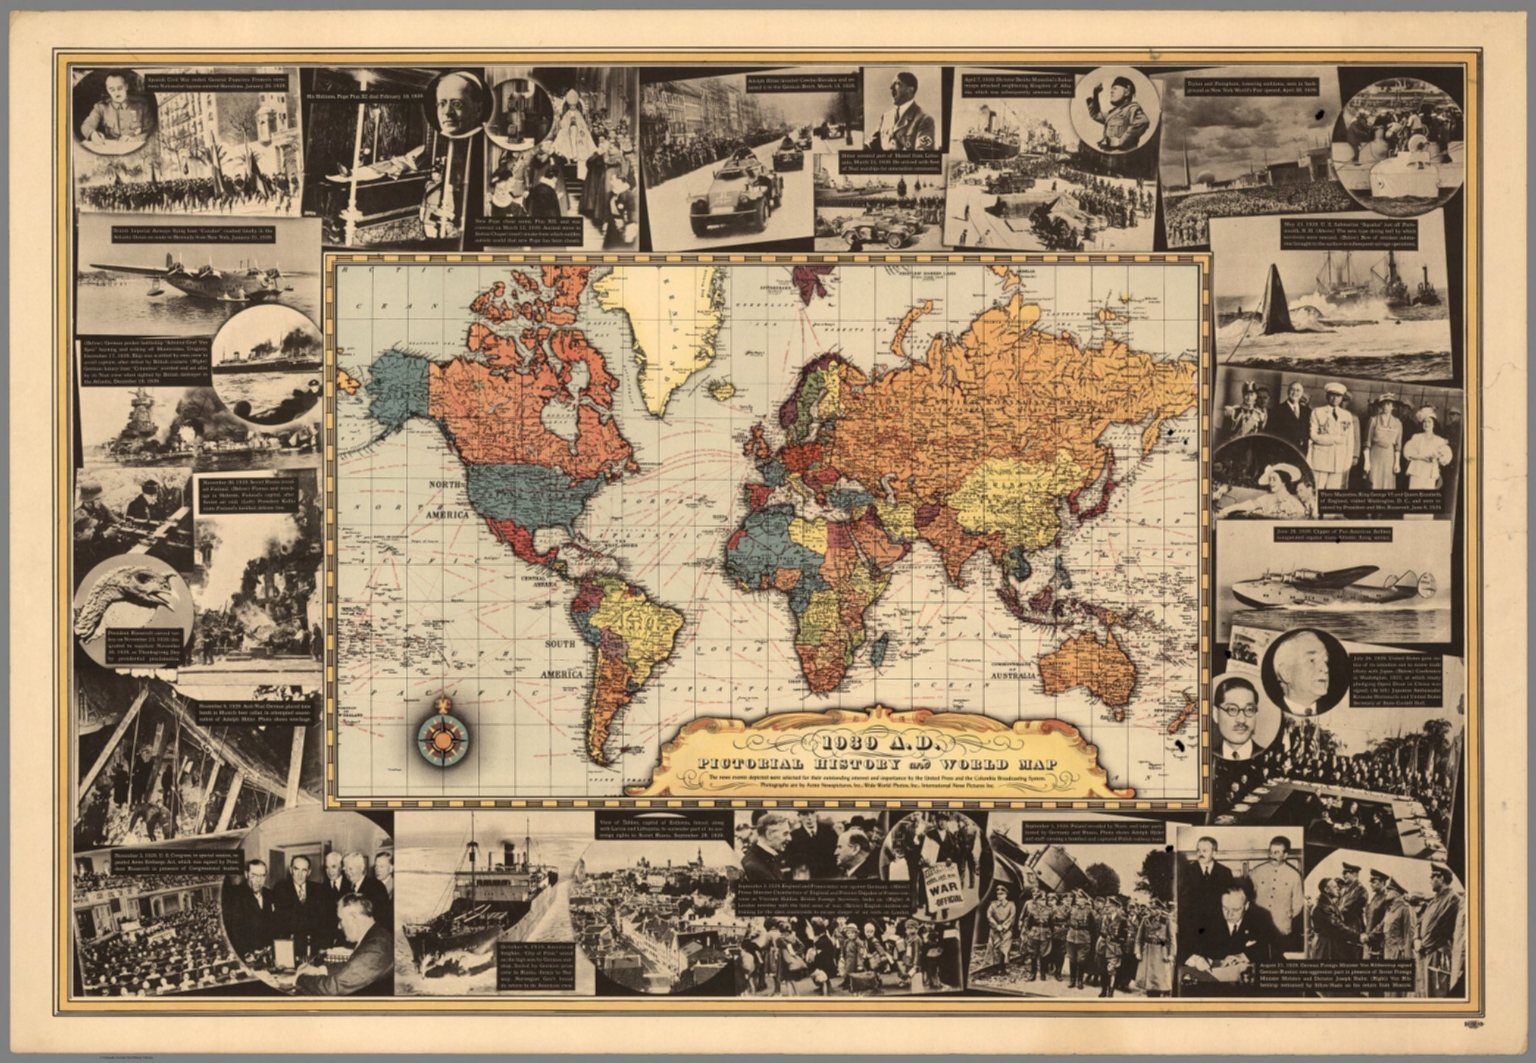 1939 A.D. Pictorial history and world map - David Rumsey ...